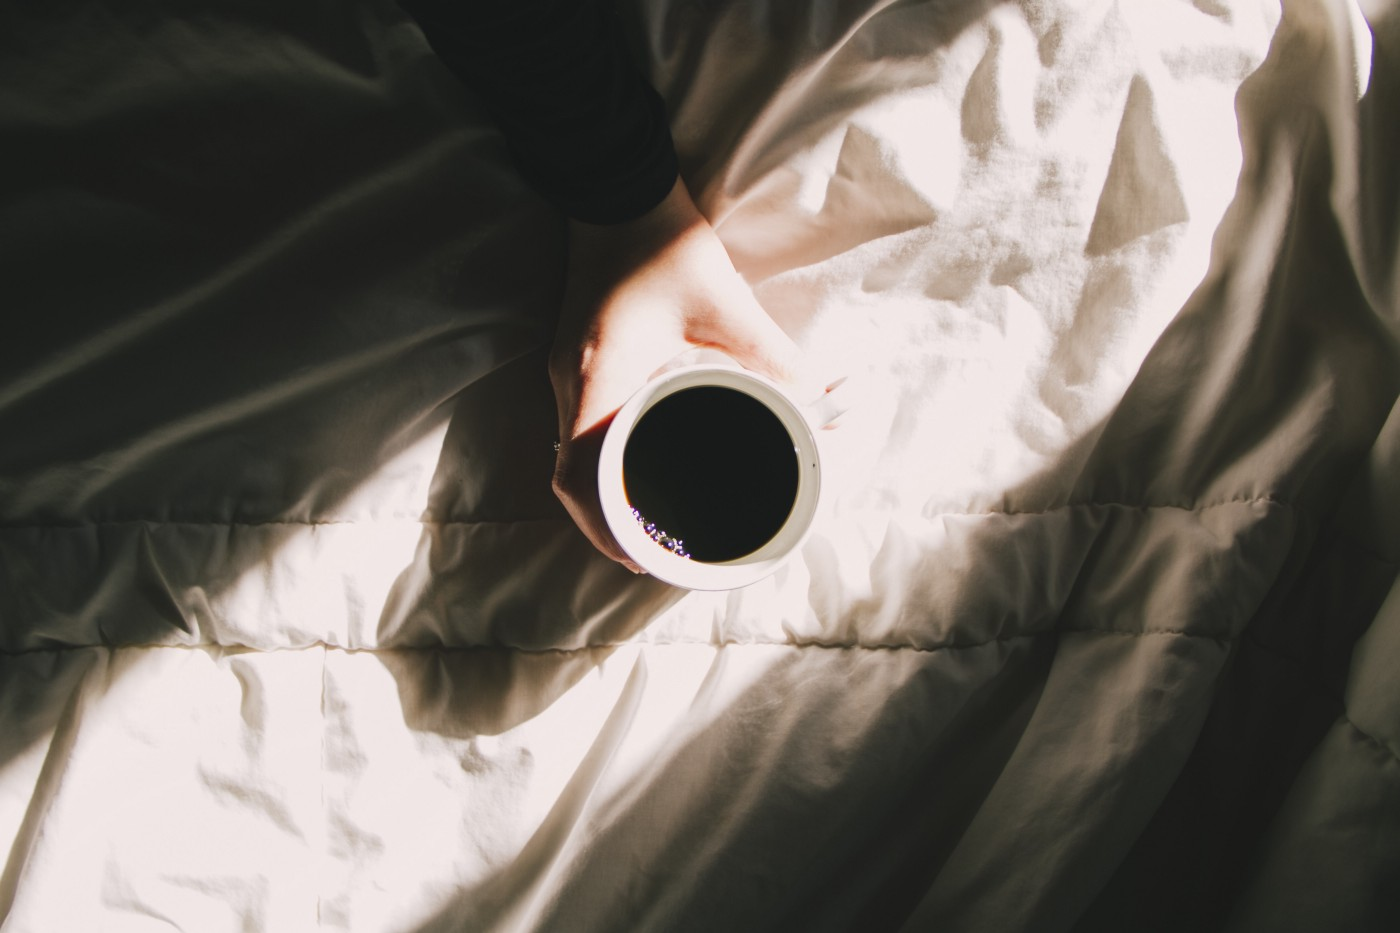 An above photo of a cup of black coffee on top of a cloth material being held by a hand coming into the frame